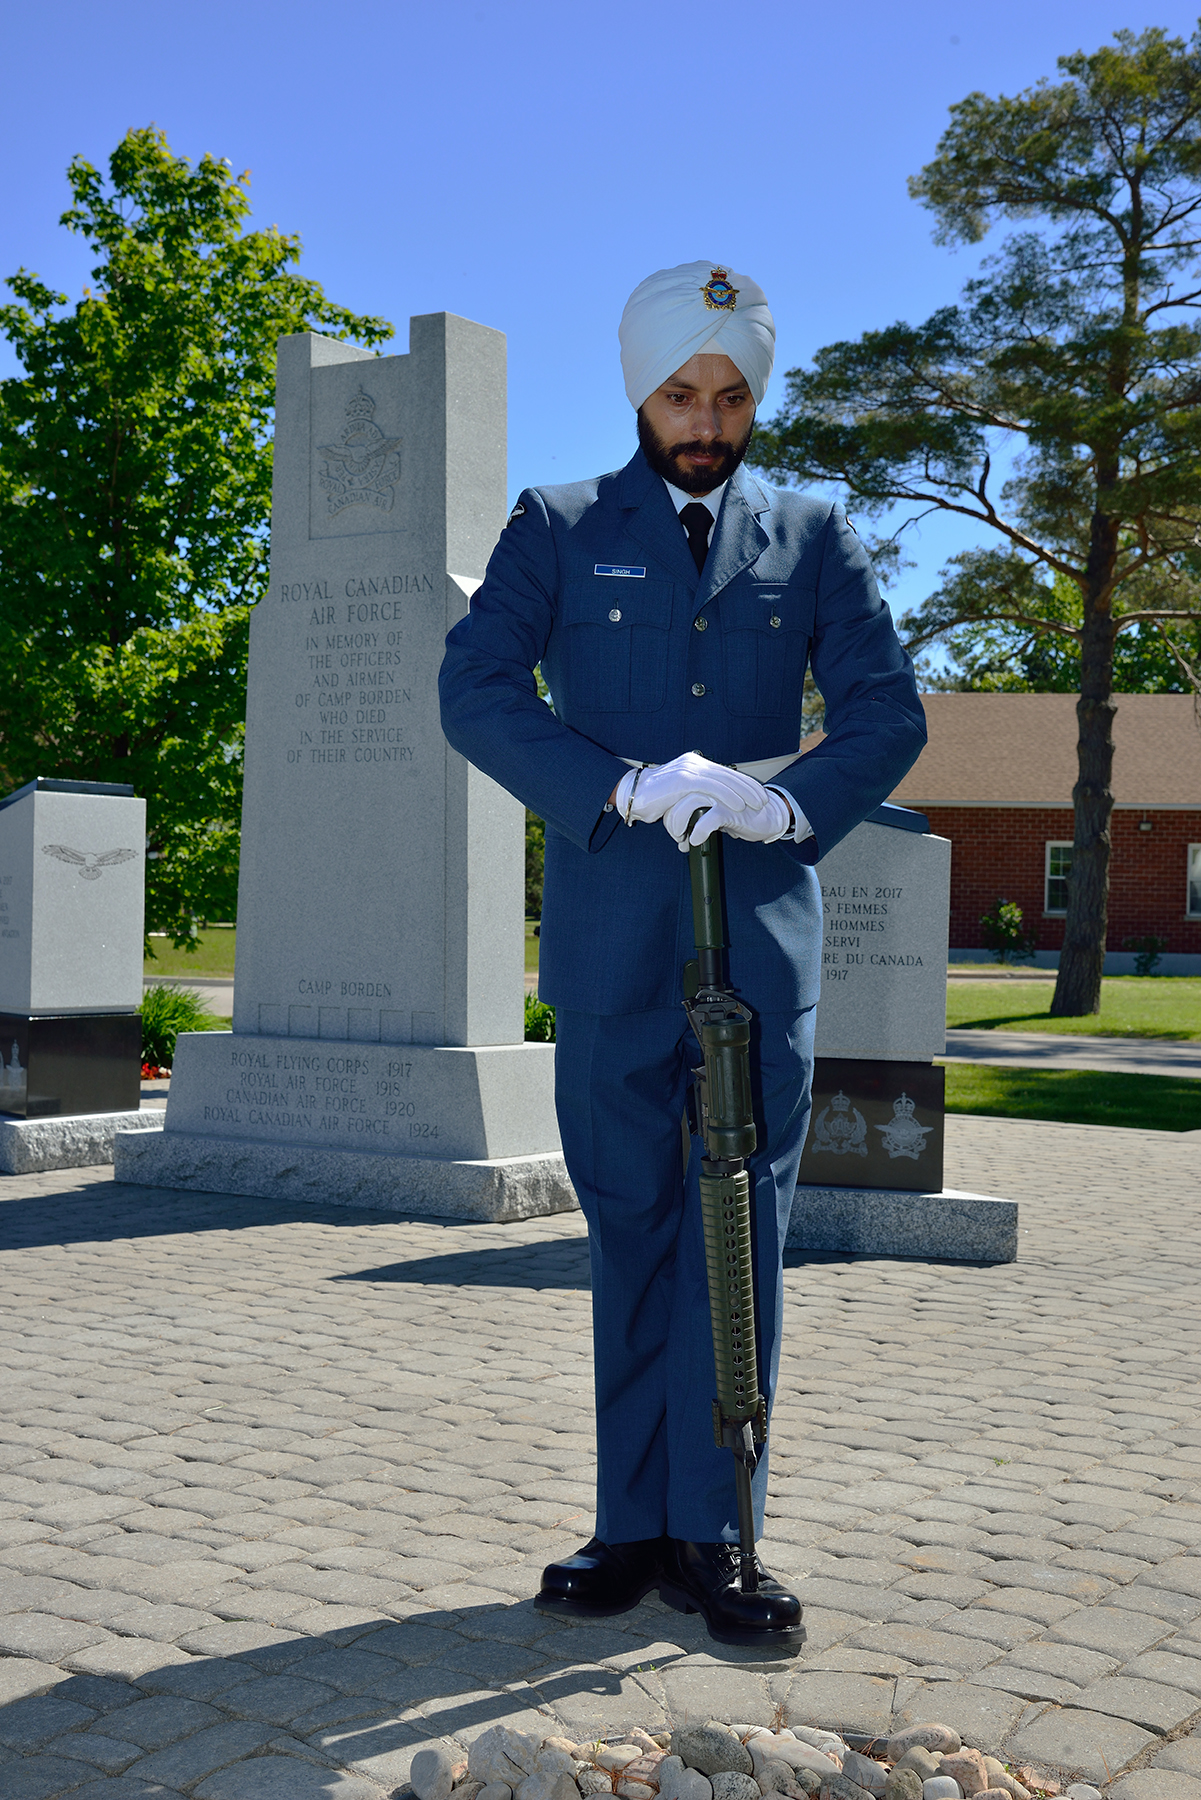 A man wearing a blue military uniform and a white turban and gloves, holding a rifle upside down with the end of the barrel on his boot-top, stands in front of a memorial.